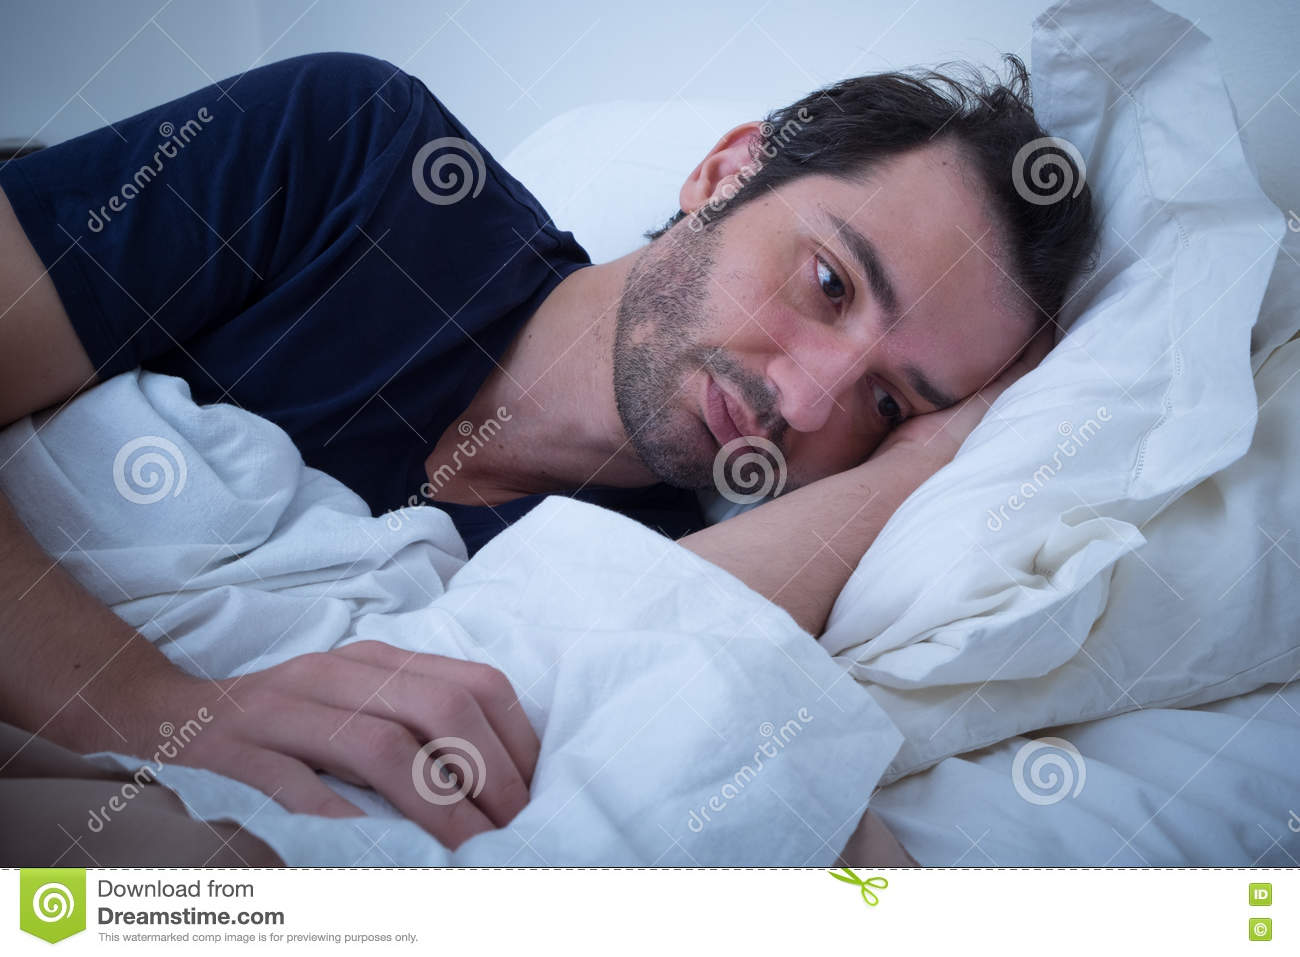 Depressed Man Lying In His Bed Stock Photo - Image of